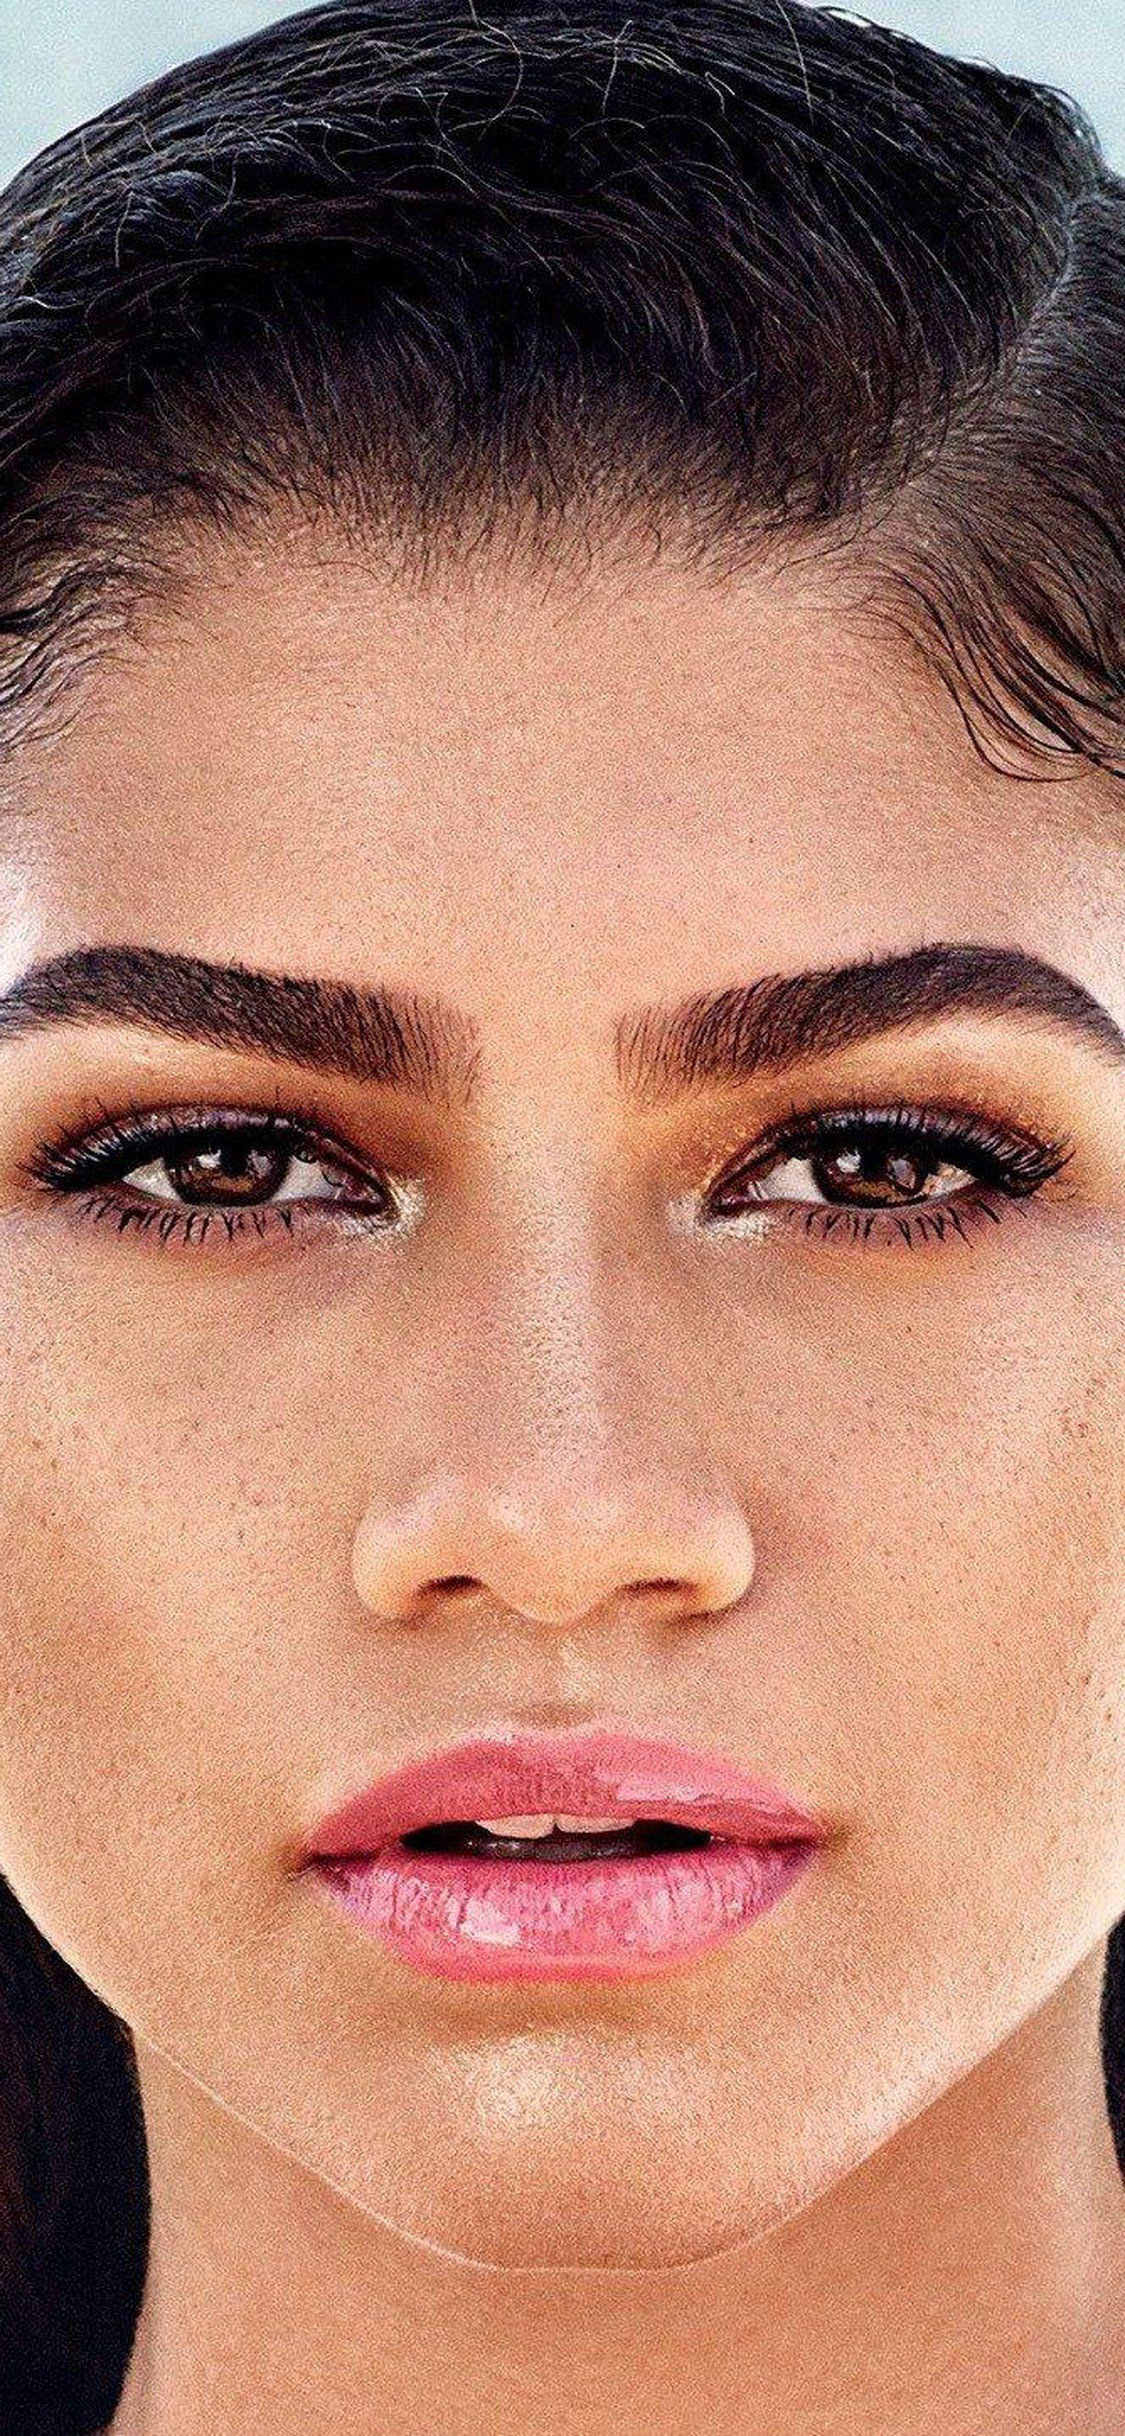 Download Zendaya Face Close Up For Iphone X Wallpaper Celebrity